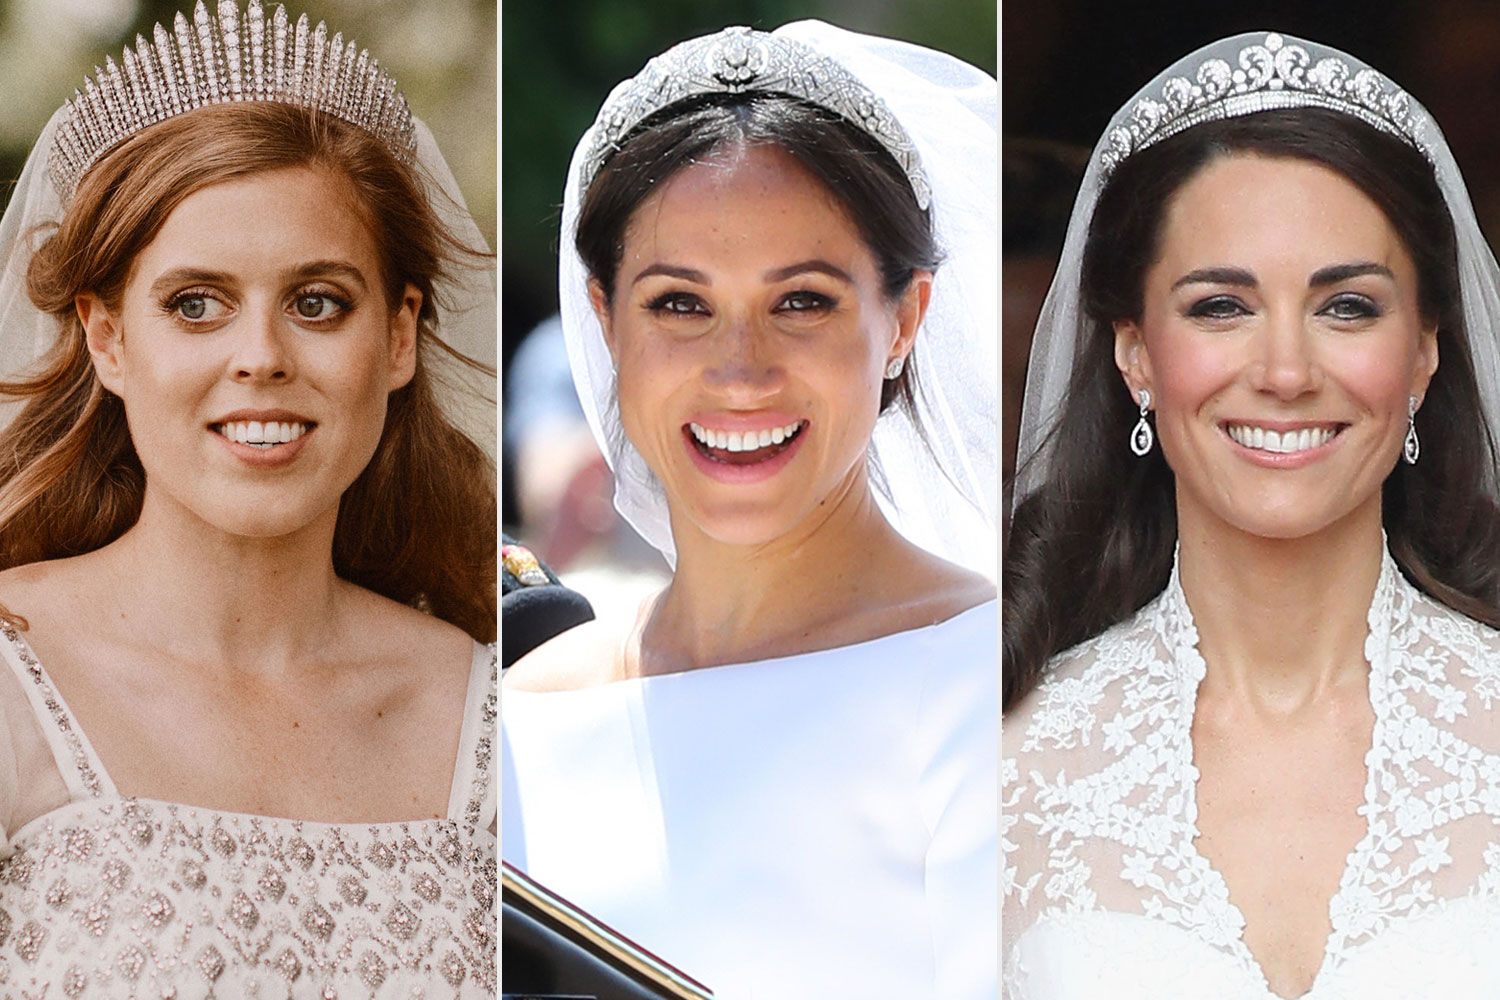 Every Tiara Worn at a Royal Wedding